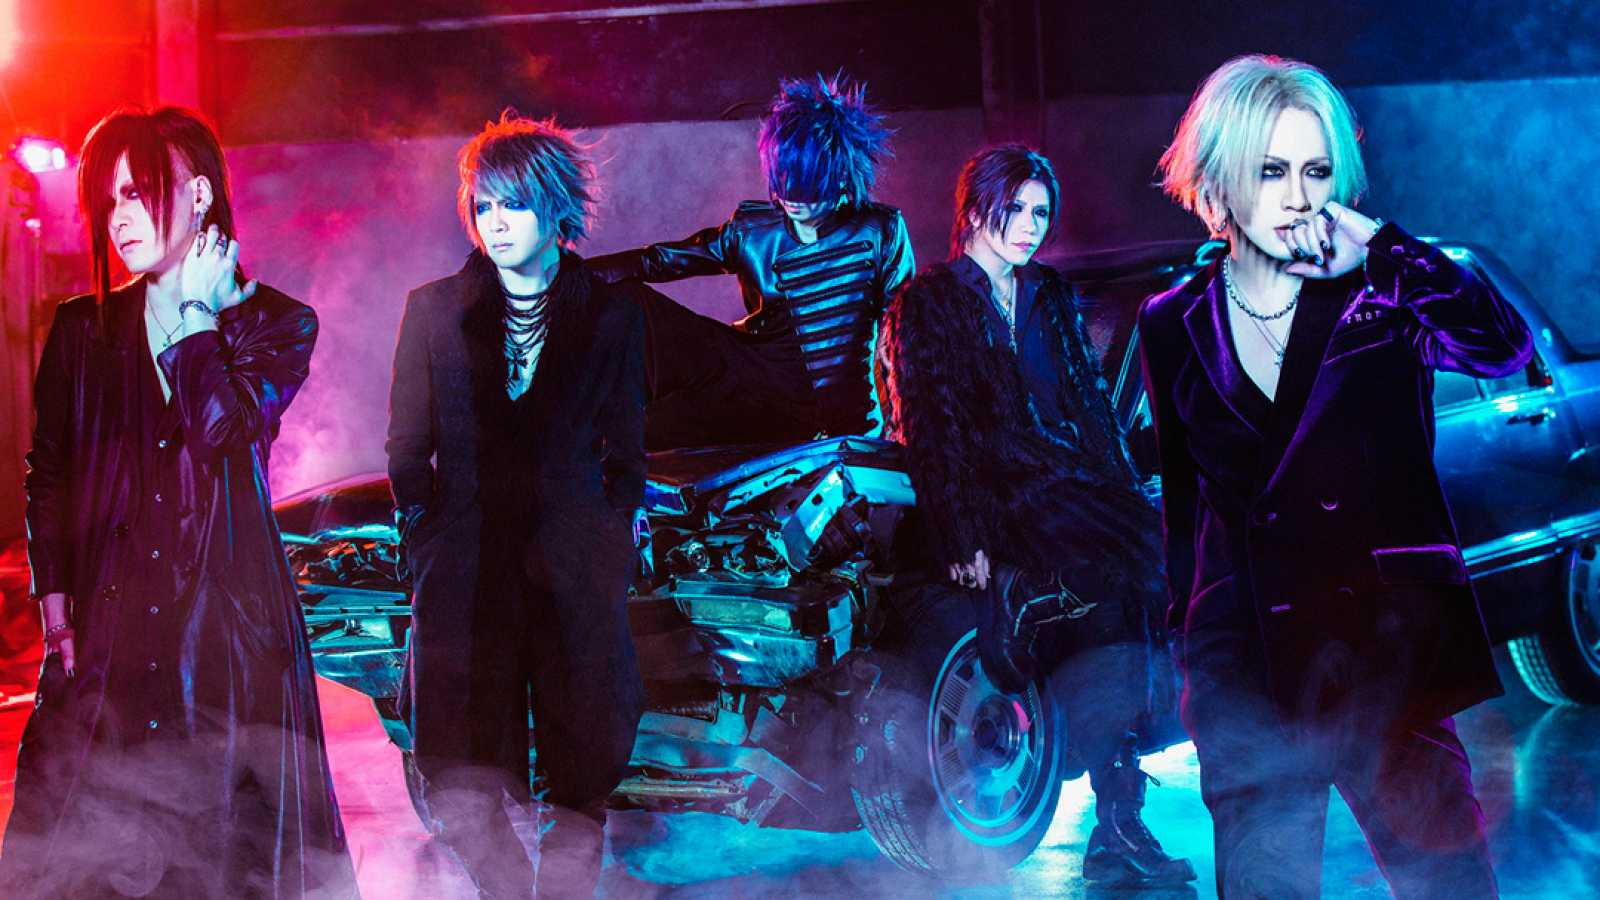 the GazettE © Sony Music Entertainment (Japan) Inc. All rights reserved.